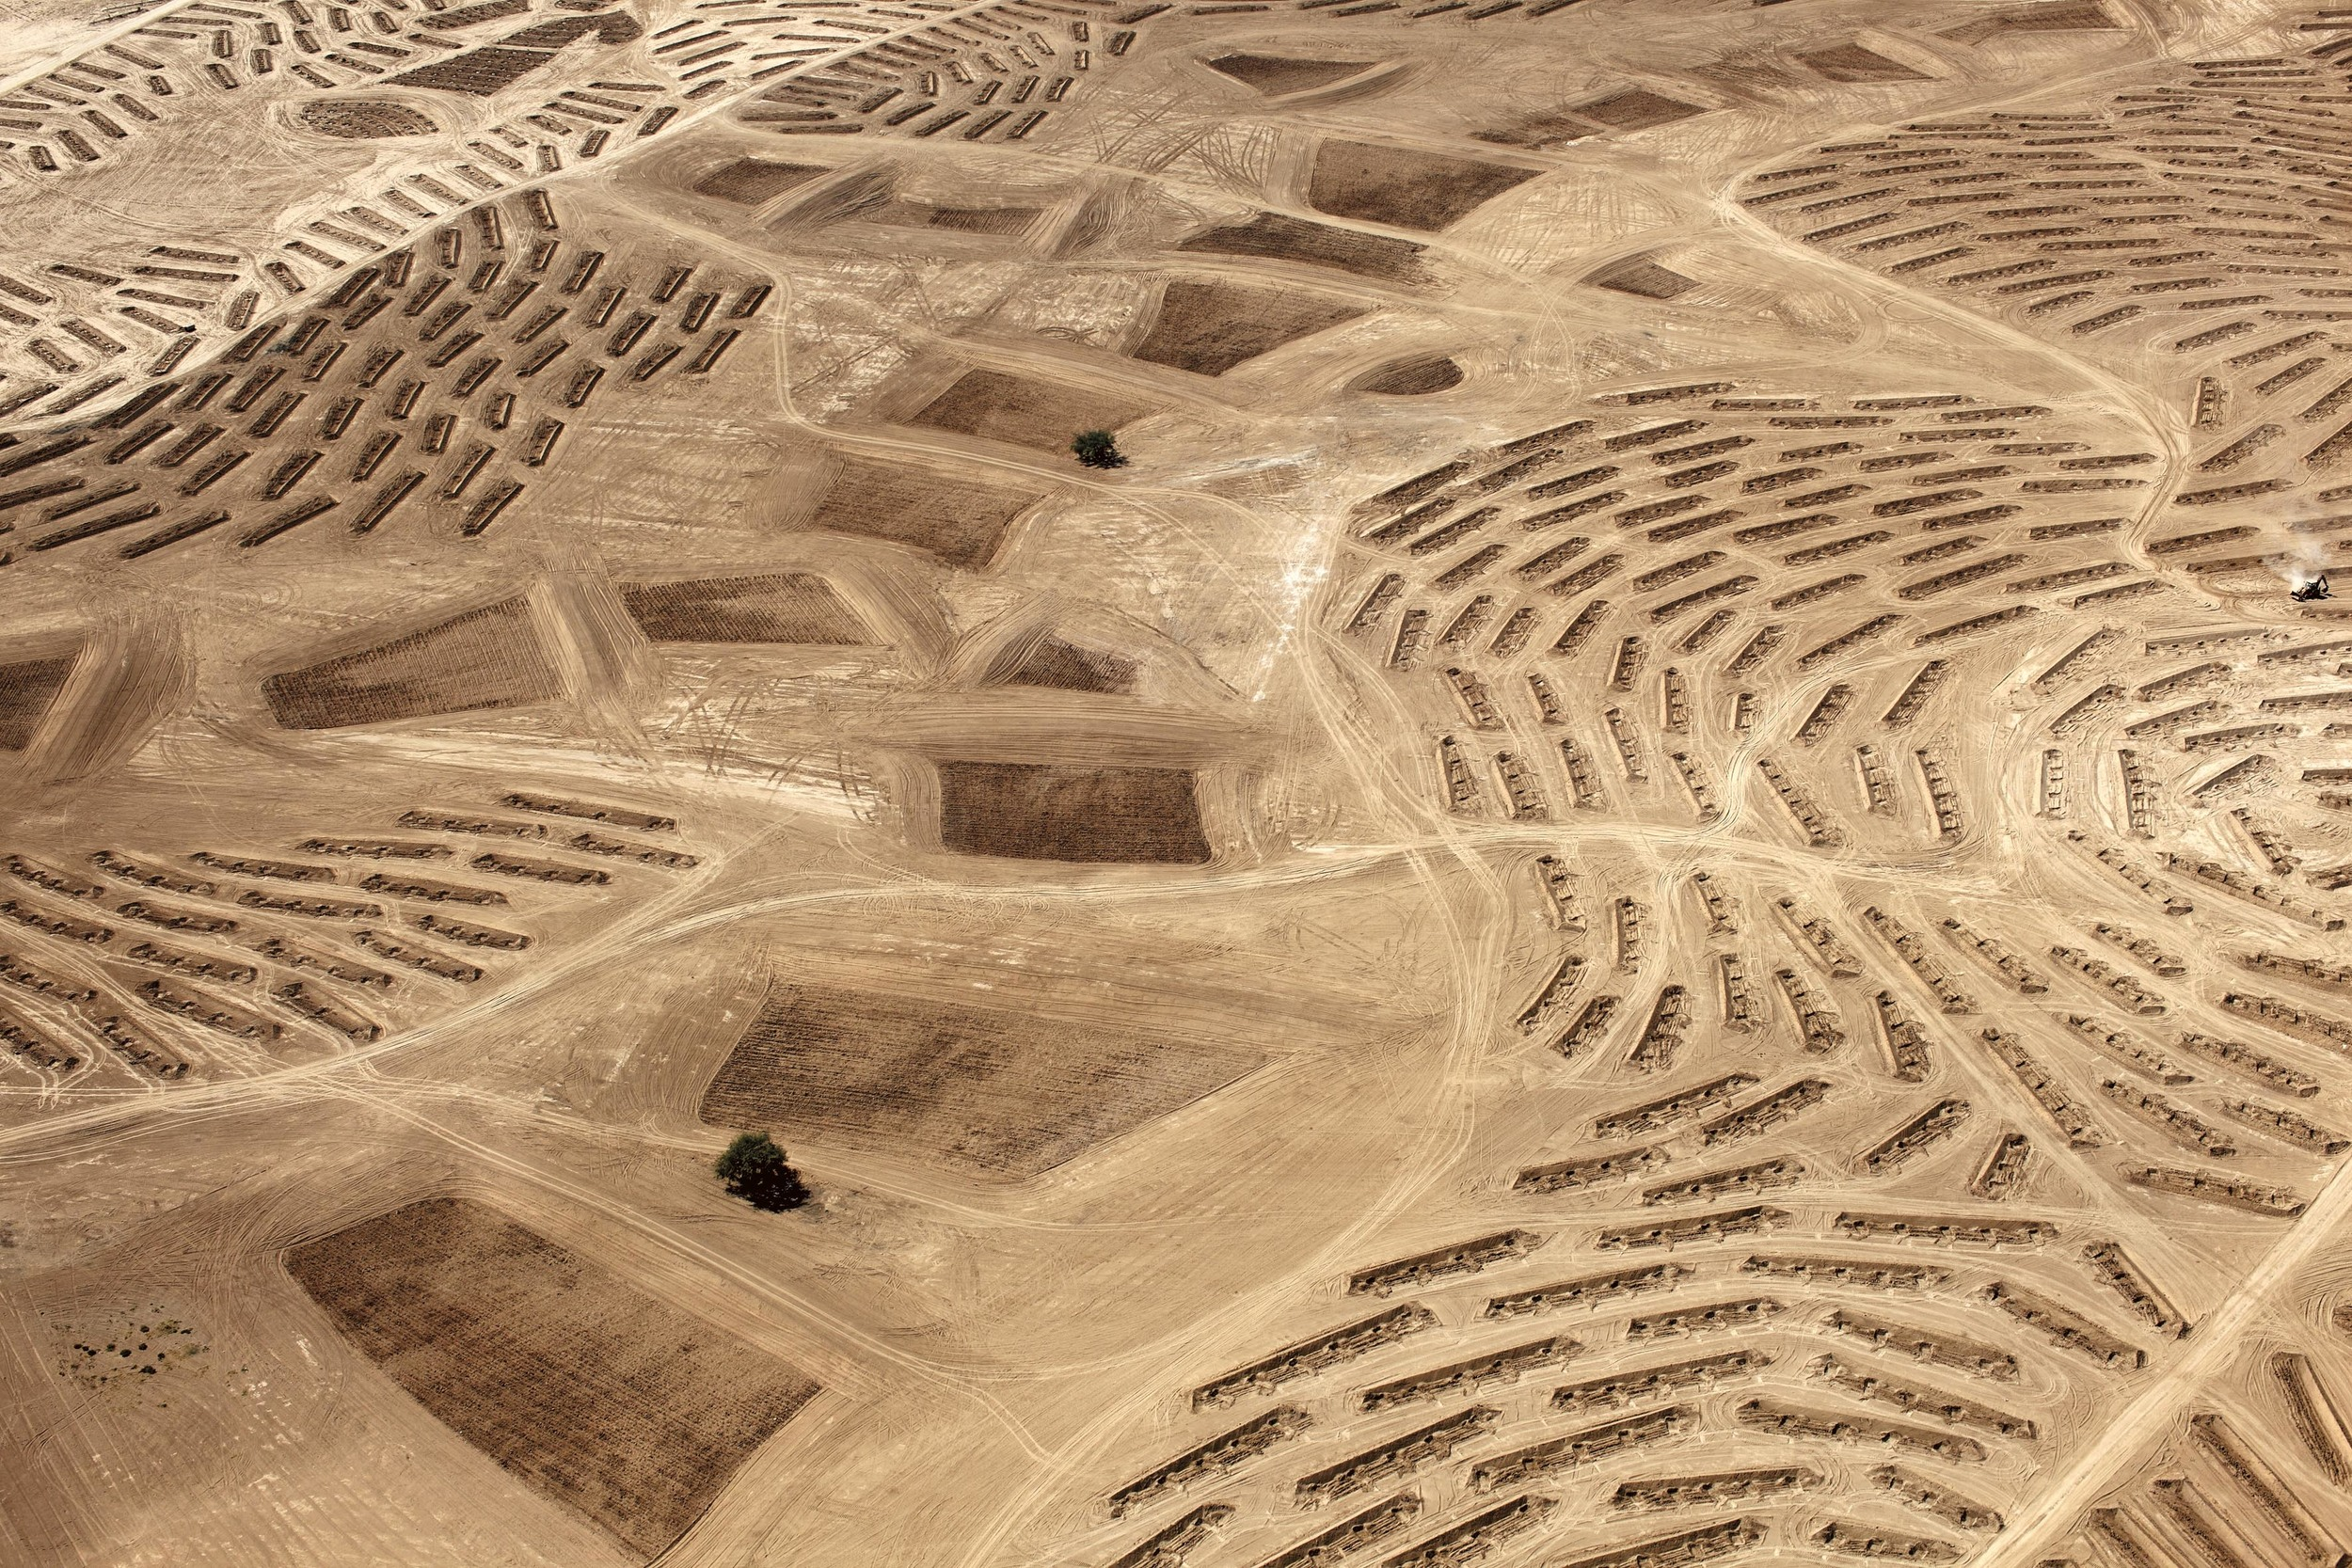 """From   Desert Bloom  by Fazal Shiekh,Steidl, 2015    LATITUDE: 31° 21' 7"""" N / LONGITUDE: 34° 46' 27"""" E      October 9, 2011. Earthwork preparation for the planting of the Jewish National Fund (JNF) Ambassador Forest as part of its afforestation campaign to provide a green belt around the city of Beersheba (Heb., Be'er Shevaʽ/Arabic, Bīr a-Ssabʽ). The JNF is a nongovernmental Zionist organisation founded in 1901 for the purpose of buying land, on behalf of world Jewry, for the foundations of a Jewish state in Ottoman-controlled Palestine. Today the JNF is active in afforestation and presents itself as a """"global environmental leader."""" In the summer of 2010, the homes of the Abu Jāber, Abu Mdīghem, and Abu Freih families, of the al-Tūri tribe, which were on the site surrounding the two remaining trees, were demolished, and the families expelled. The land is currently claimed by the Bedouin community as part of the surrounding area of the unrecognized village of al-ʽAraqīb."""